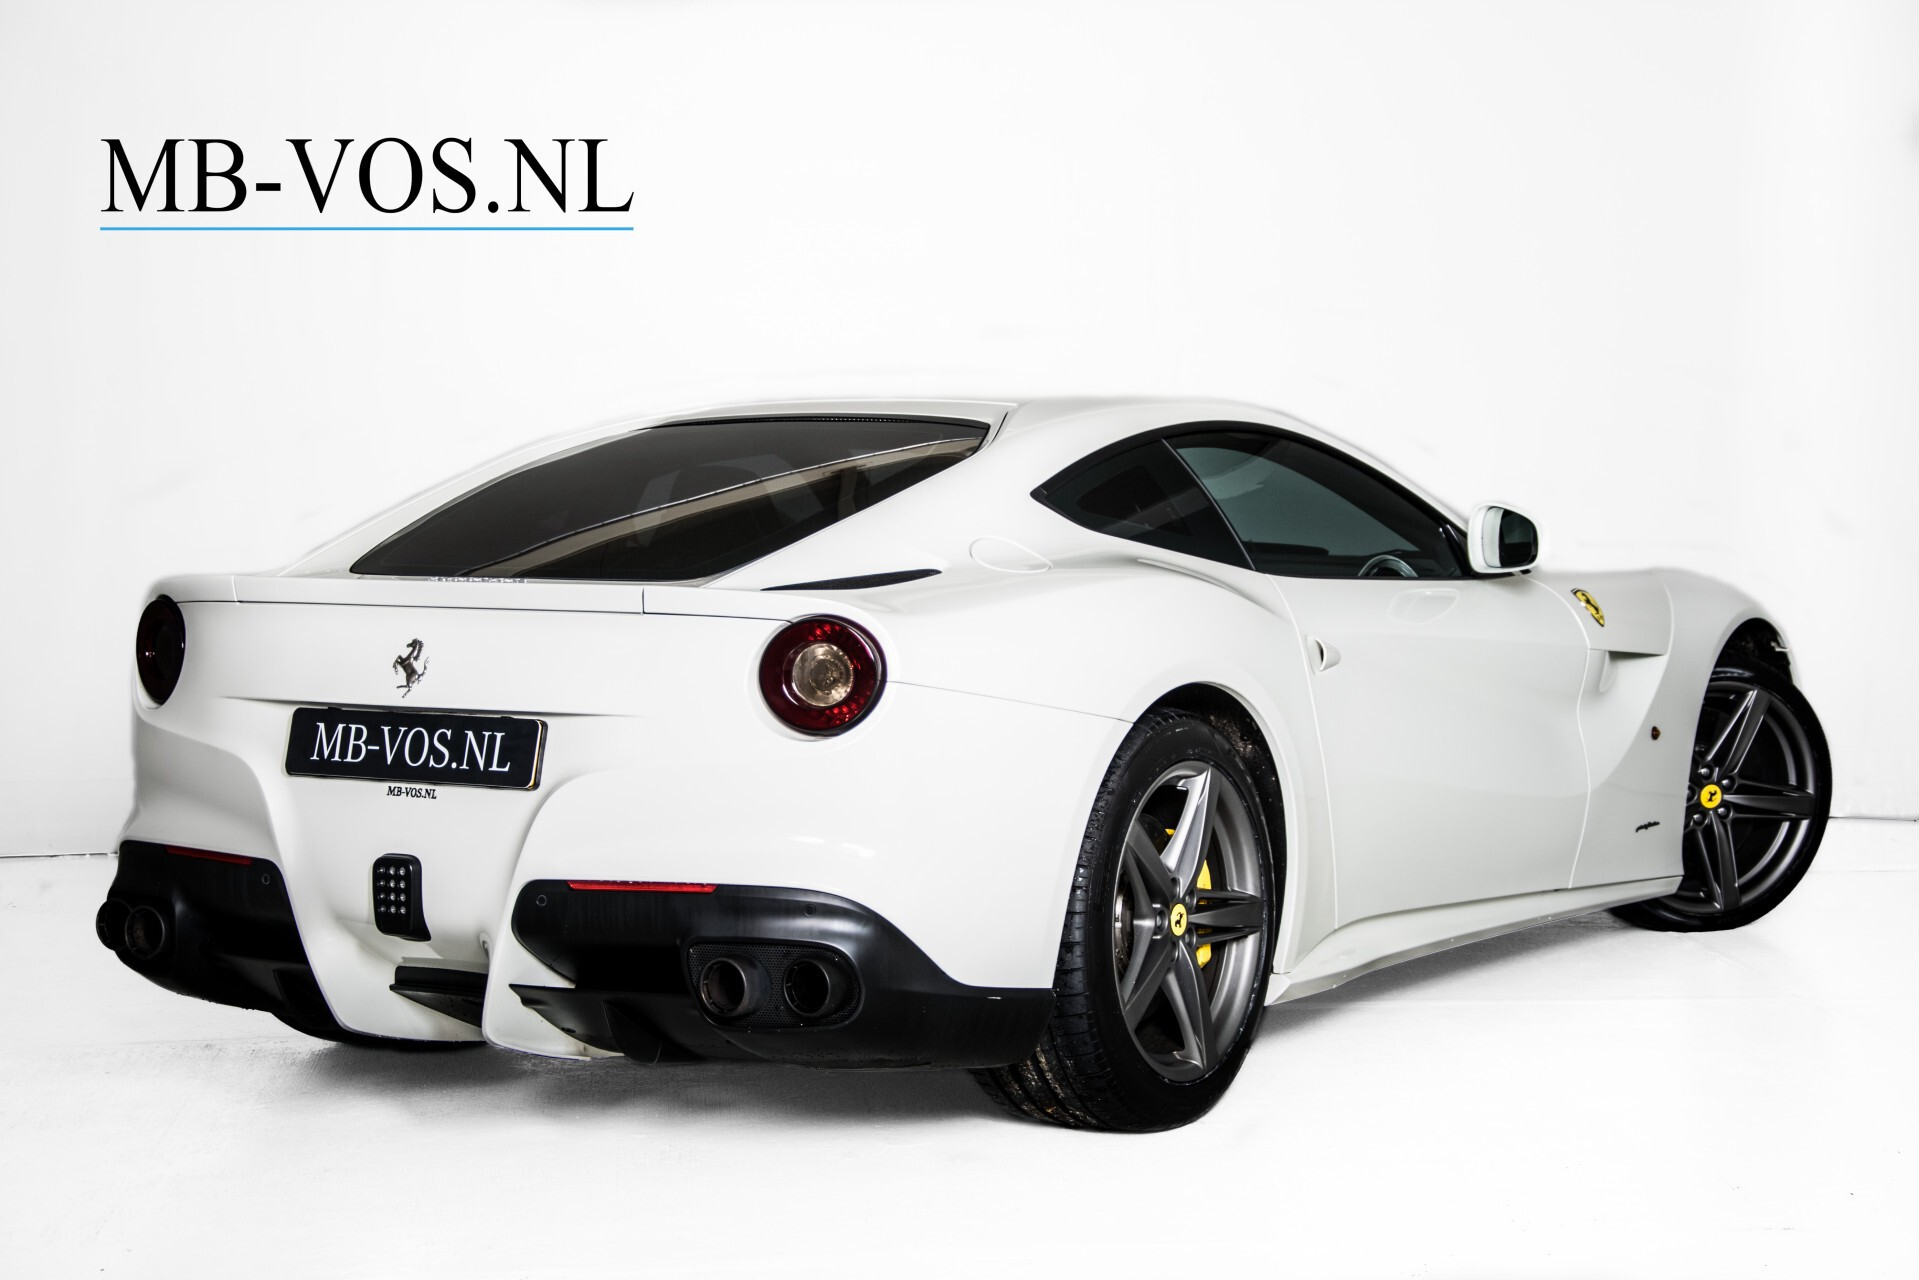 Ferrari F12 6.3 Berlinetta Capristo/Carbonseats/Led/Passenger Display Aut7 Foto 2